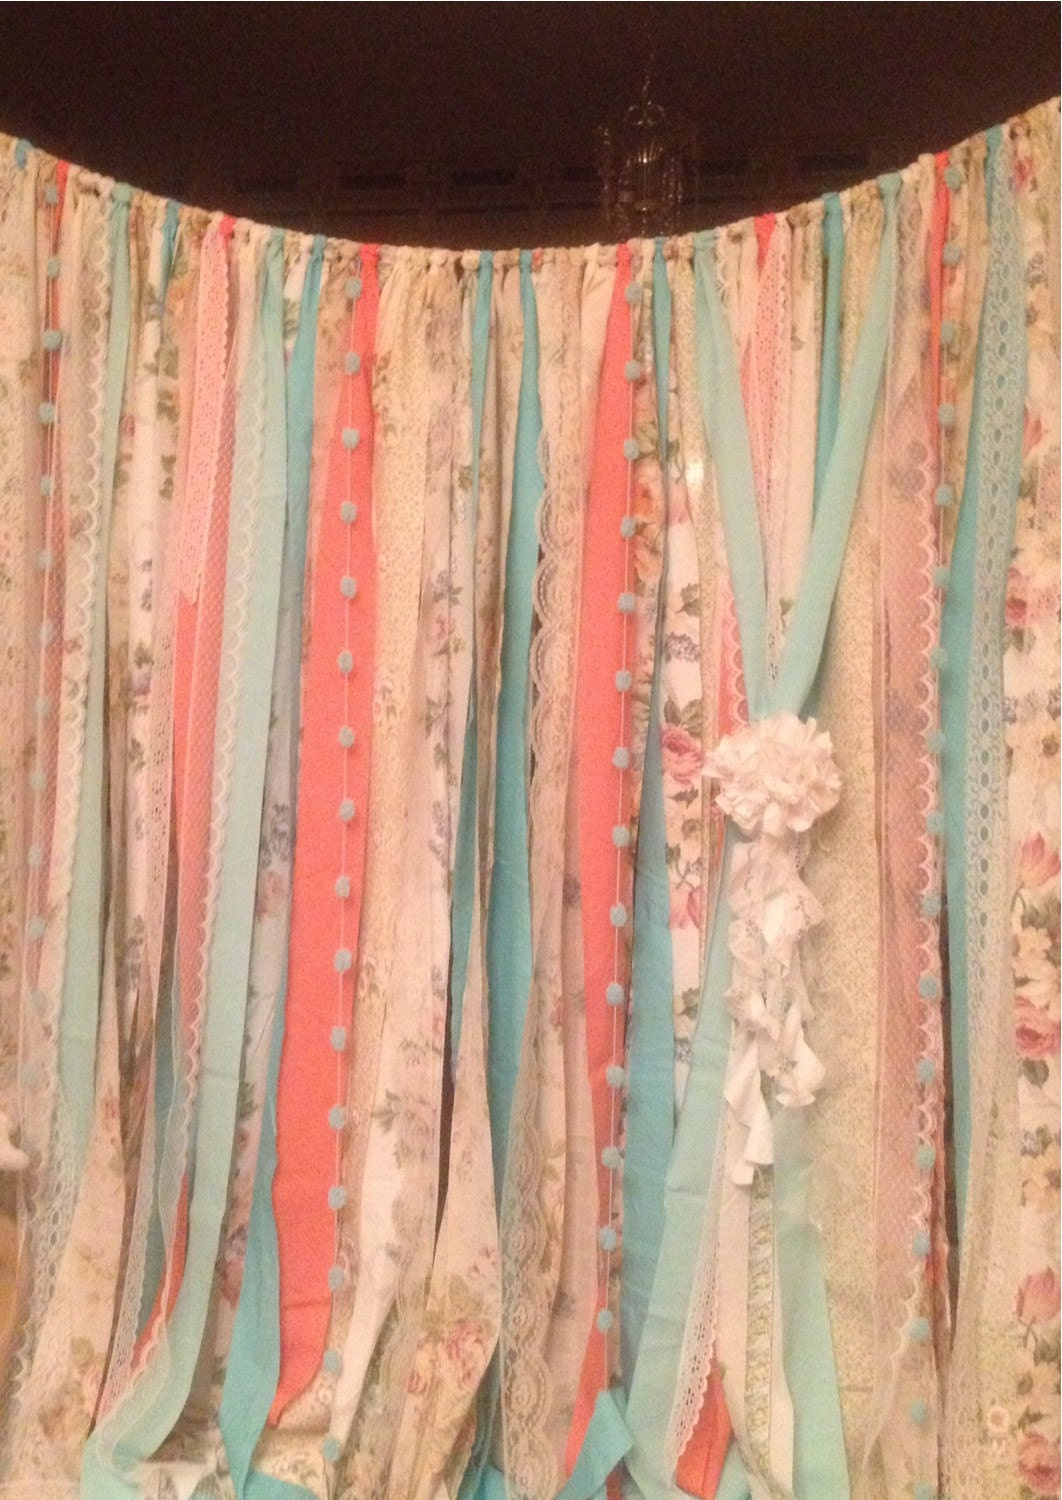 Boho window curtains - Mint Coral Aqua Teal Rag Curtain Ribbon Garland Lace And Fabric X 7 Foot Long Curtains Boho Shabby Backdrop Dorm Nursery Shower